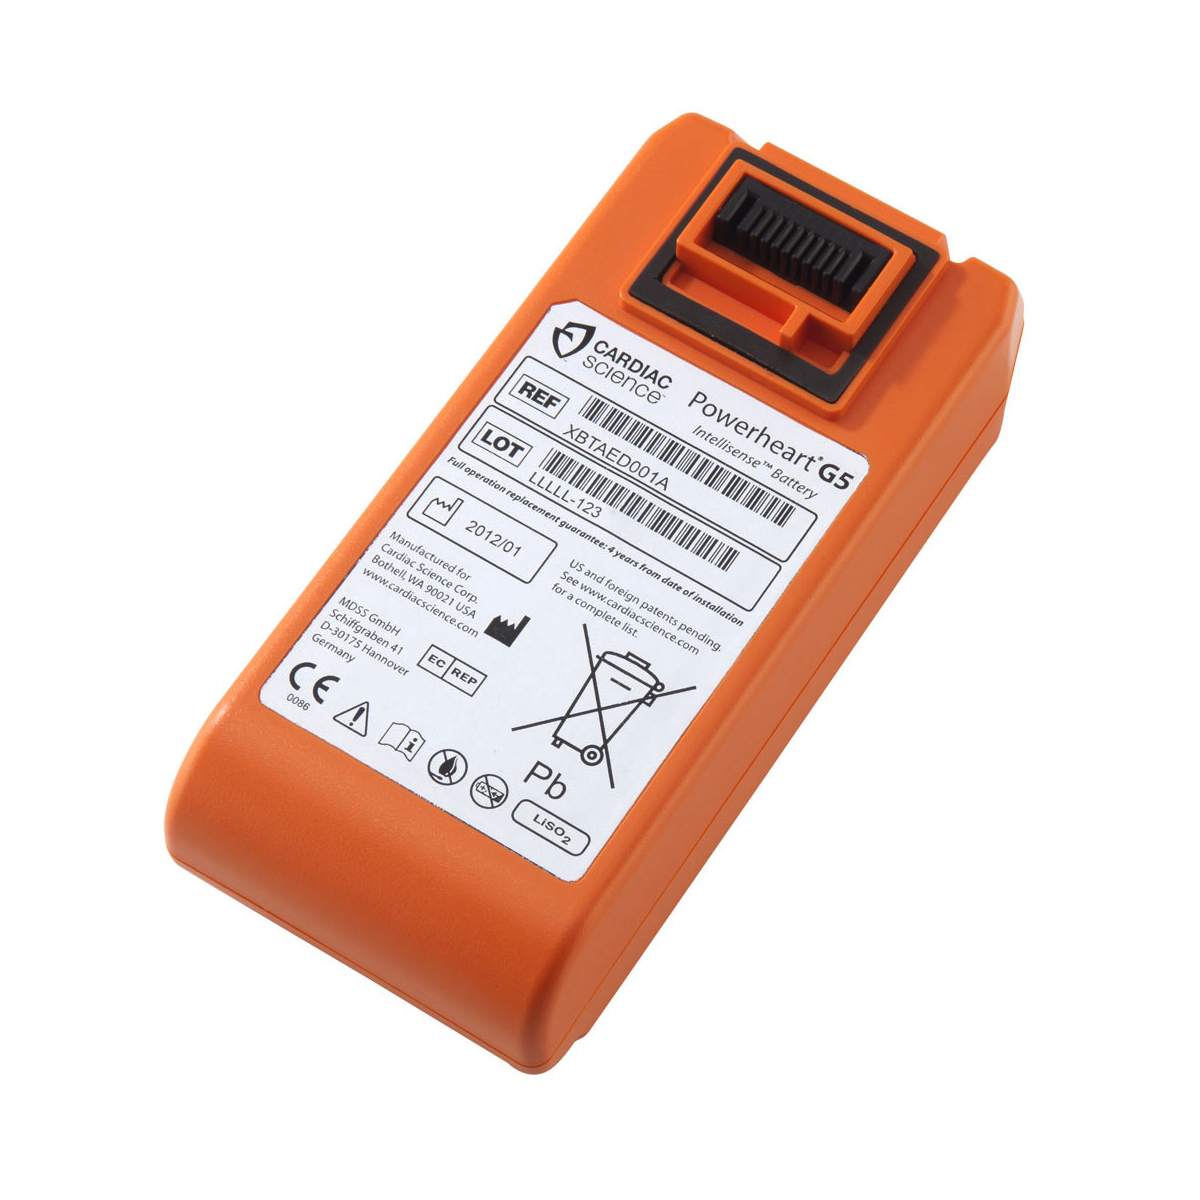 Equipment Cardiac Science G5 Replacement Battery Ref CM1206 *Up to 7-10 Day Leadtime*